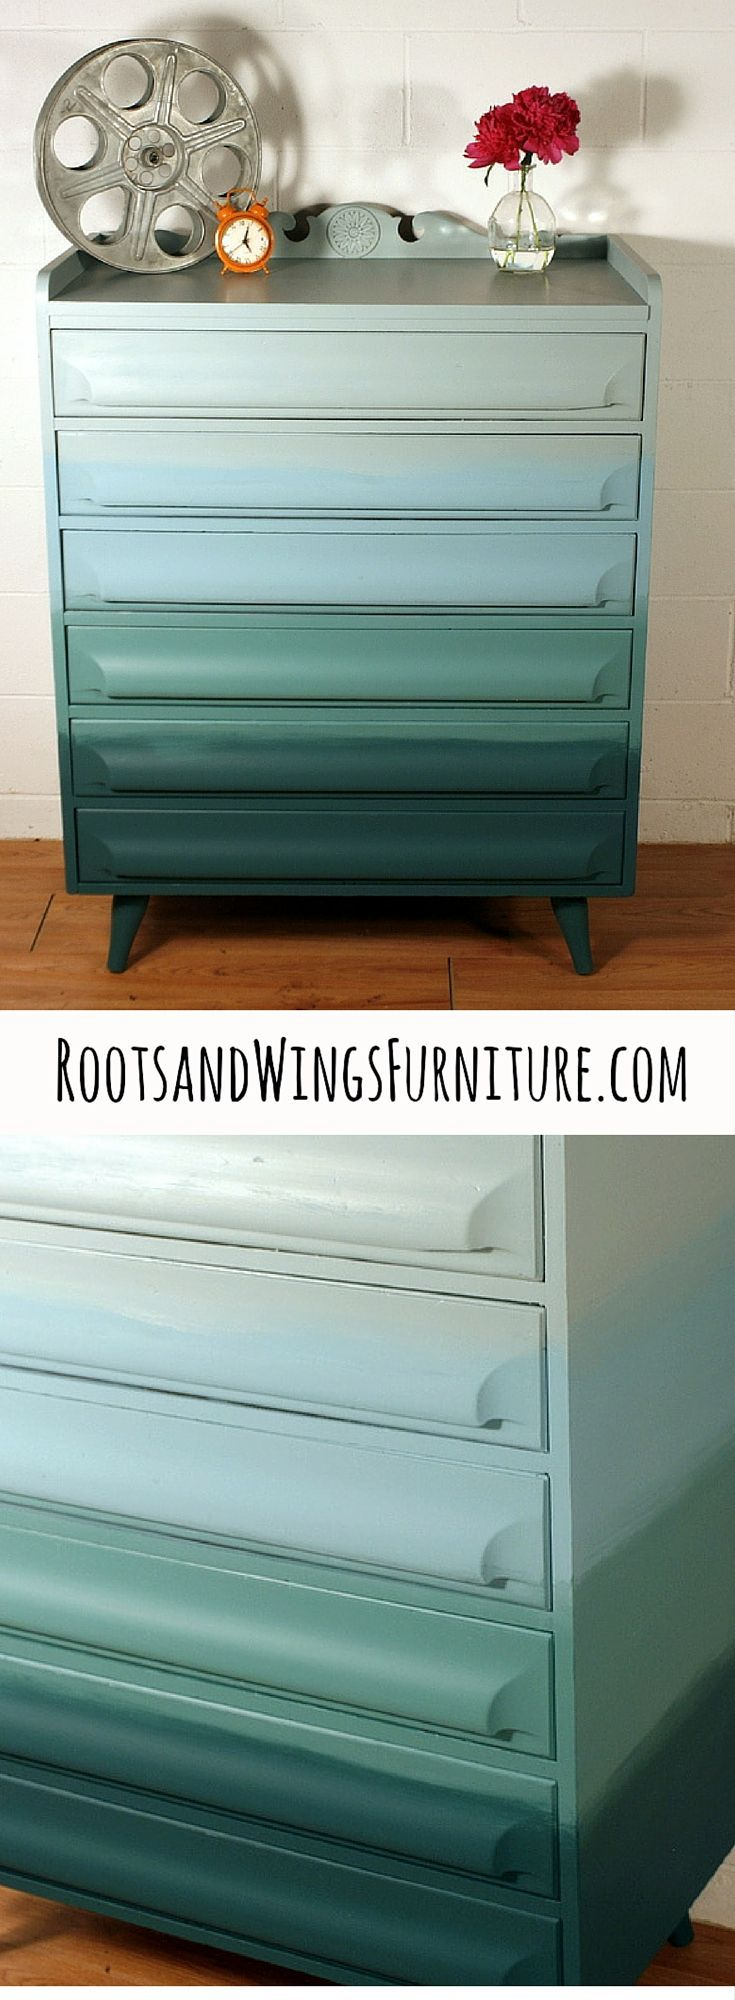 Beachy Ombre Dresser by Jenni of Roots and Wings Furniture. To get the look, order General Finishes here, https://www.etsy.com/shop/RootsWingsFurniture?ref=hdr_shop_menu§ion_id=17690732